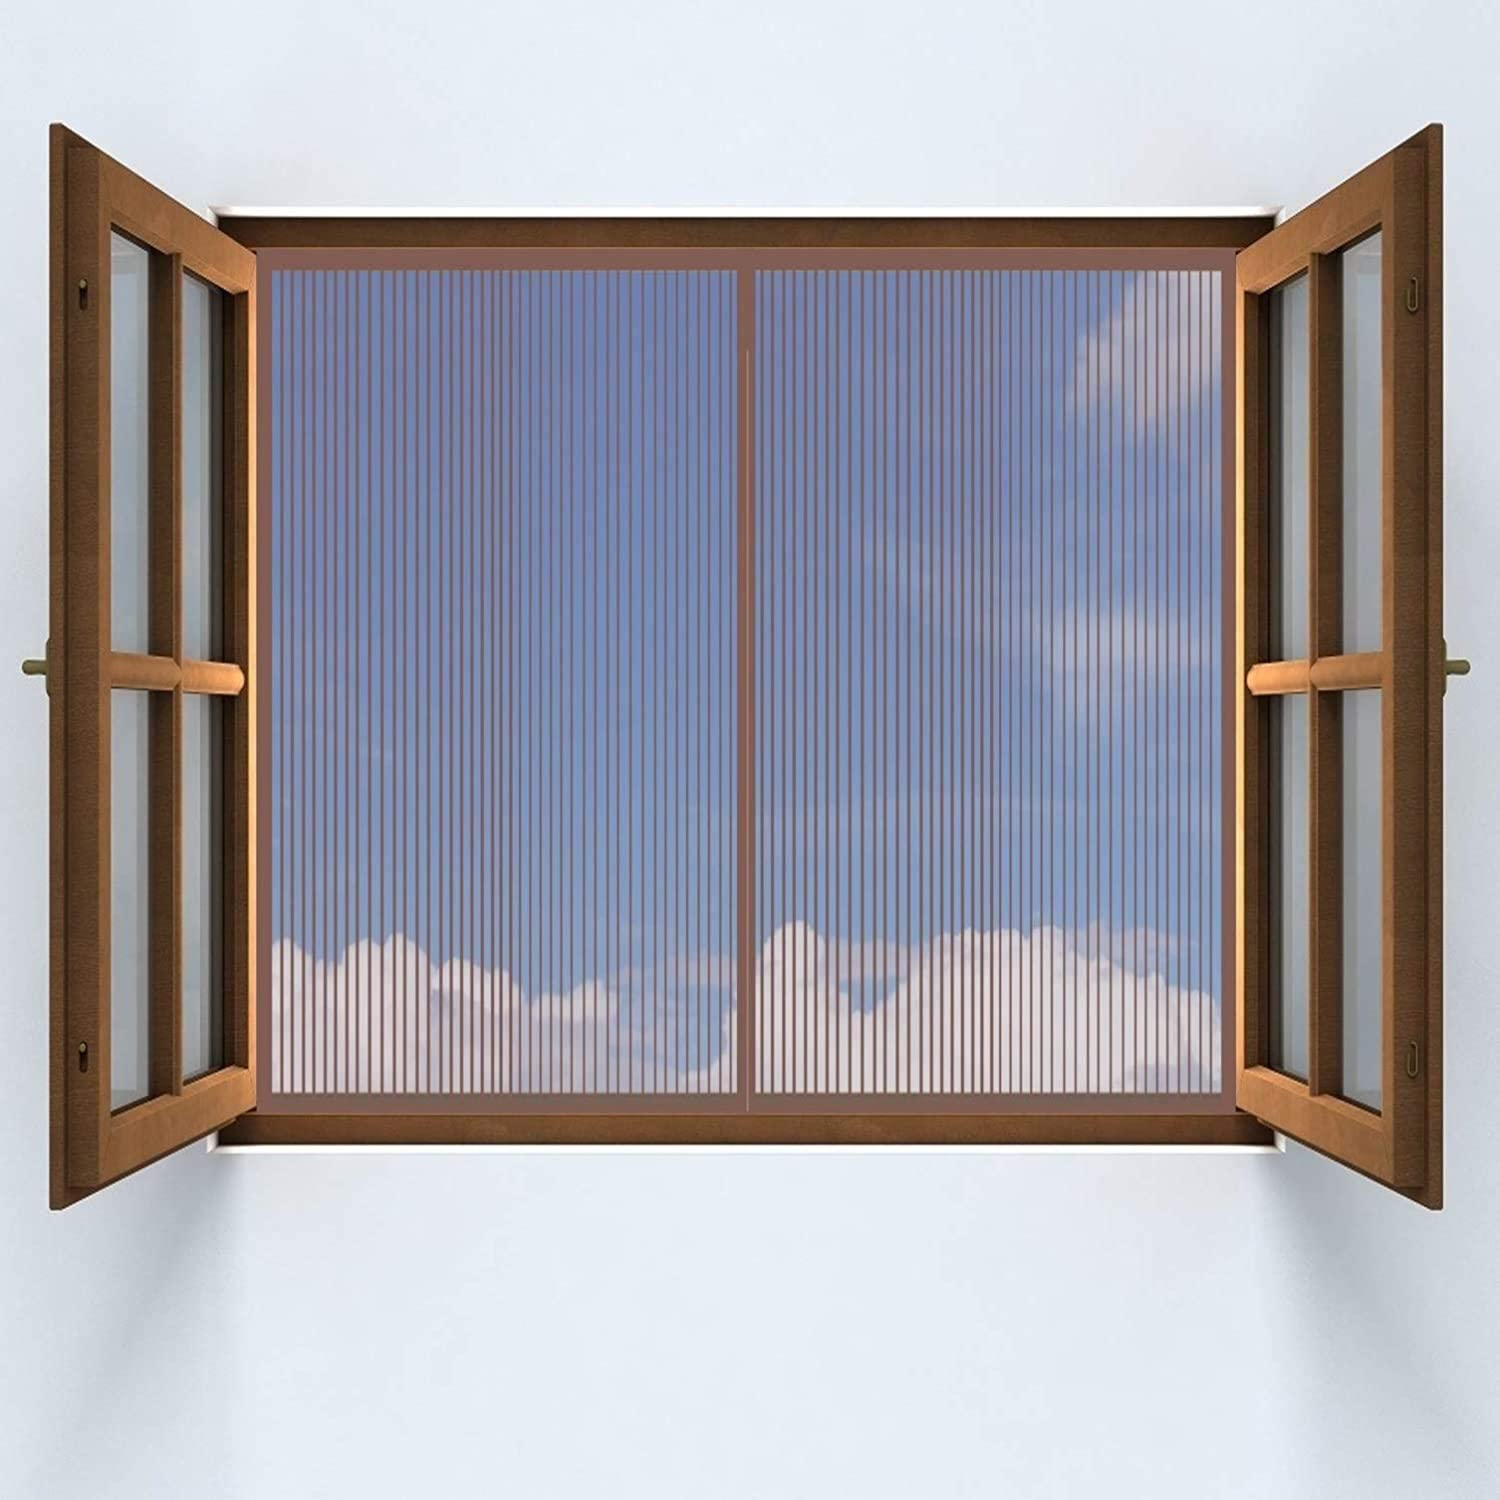 HAODELE Window Screen Bombing new work 75x120cm Closing Magnets Curtains Fees free!! Paste Su